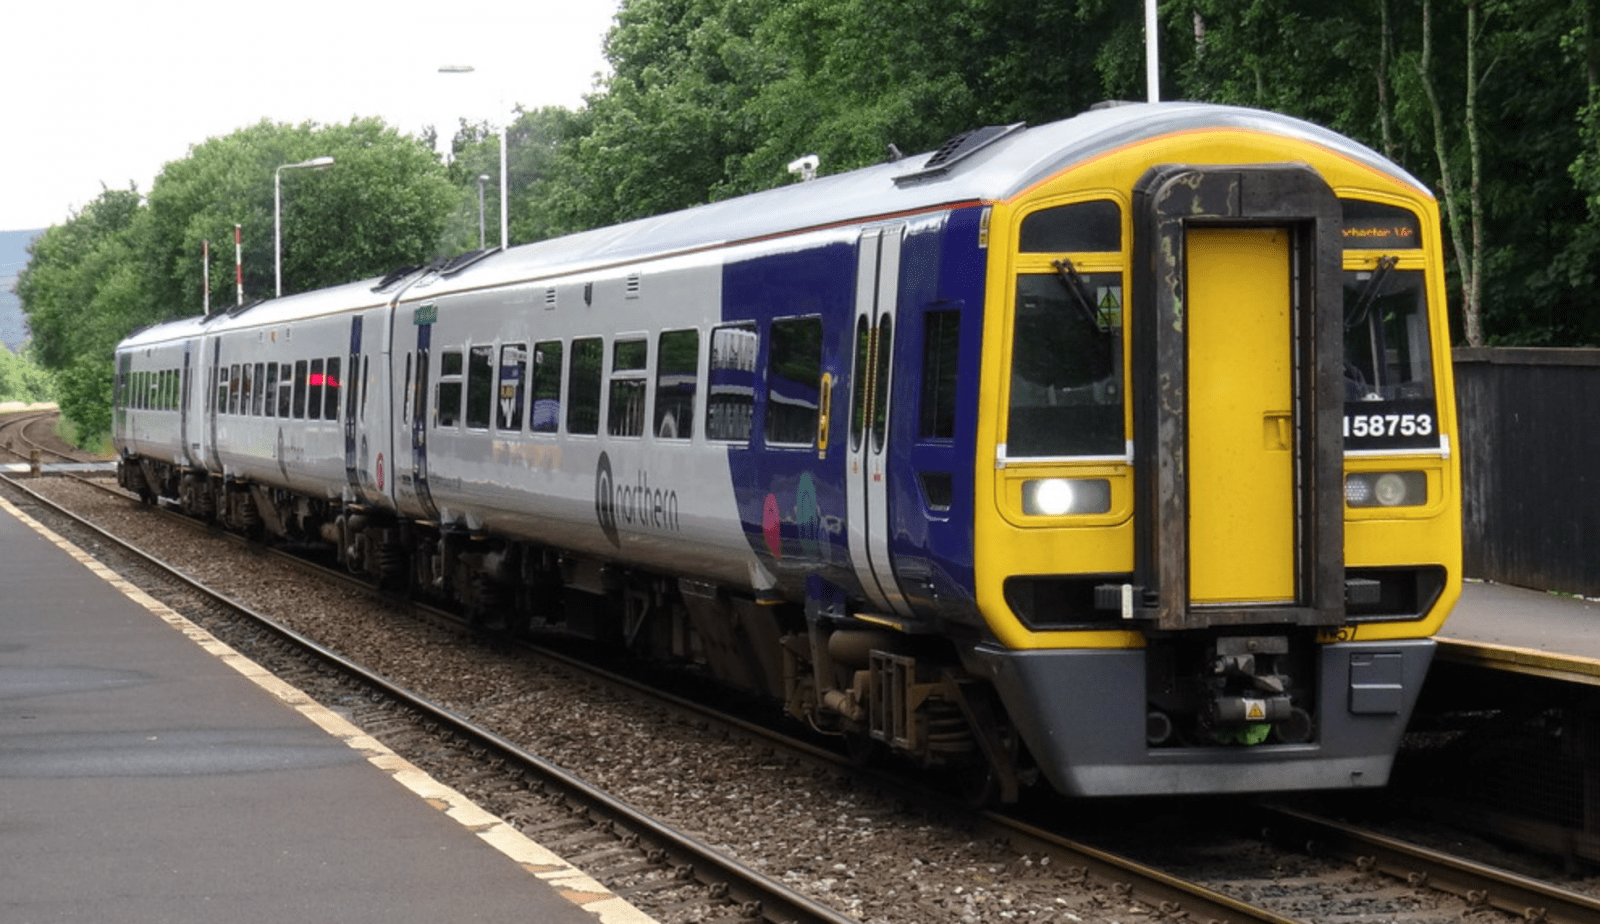 Rail delays in Manchester caused by helium balloon tangled in 25,000-volt electric cable, The Manc